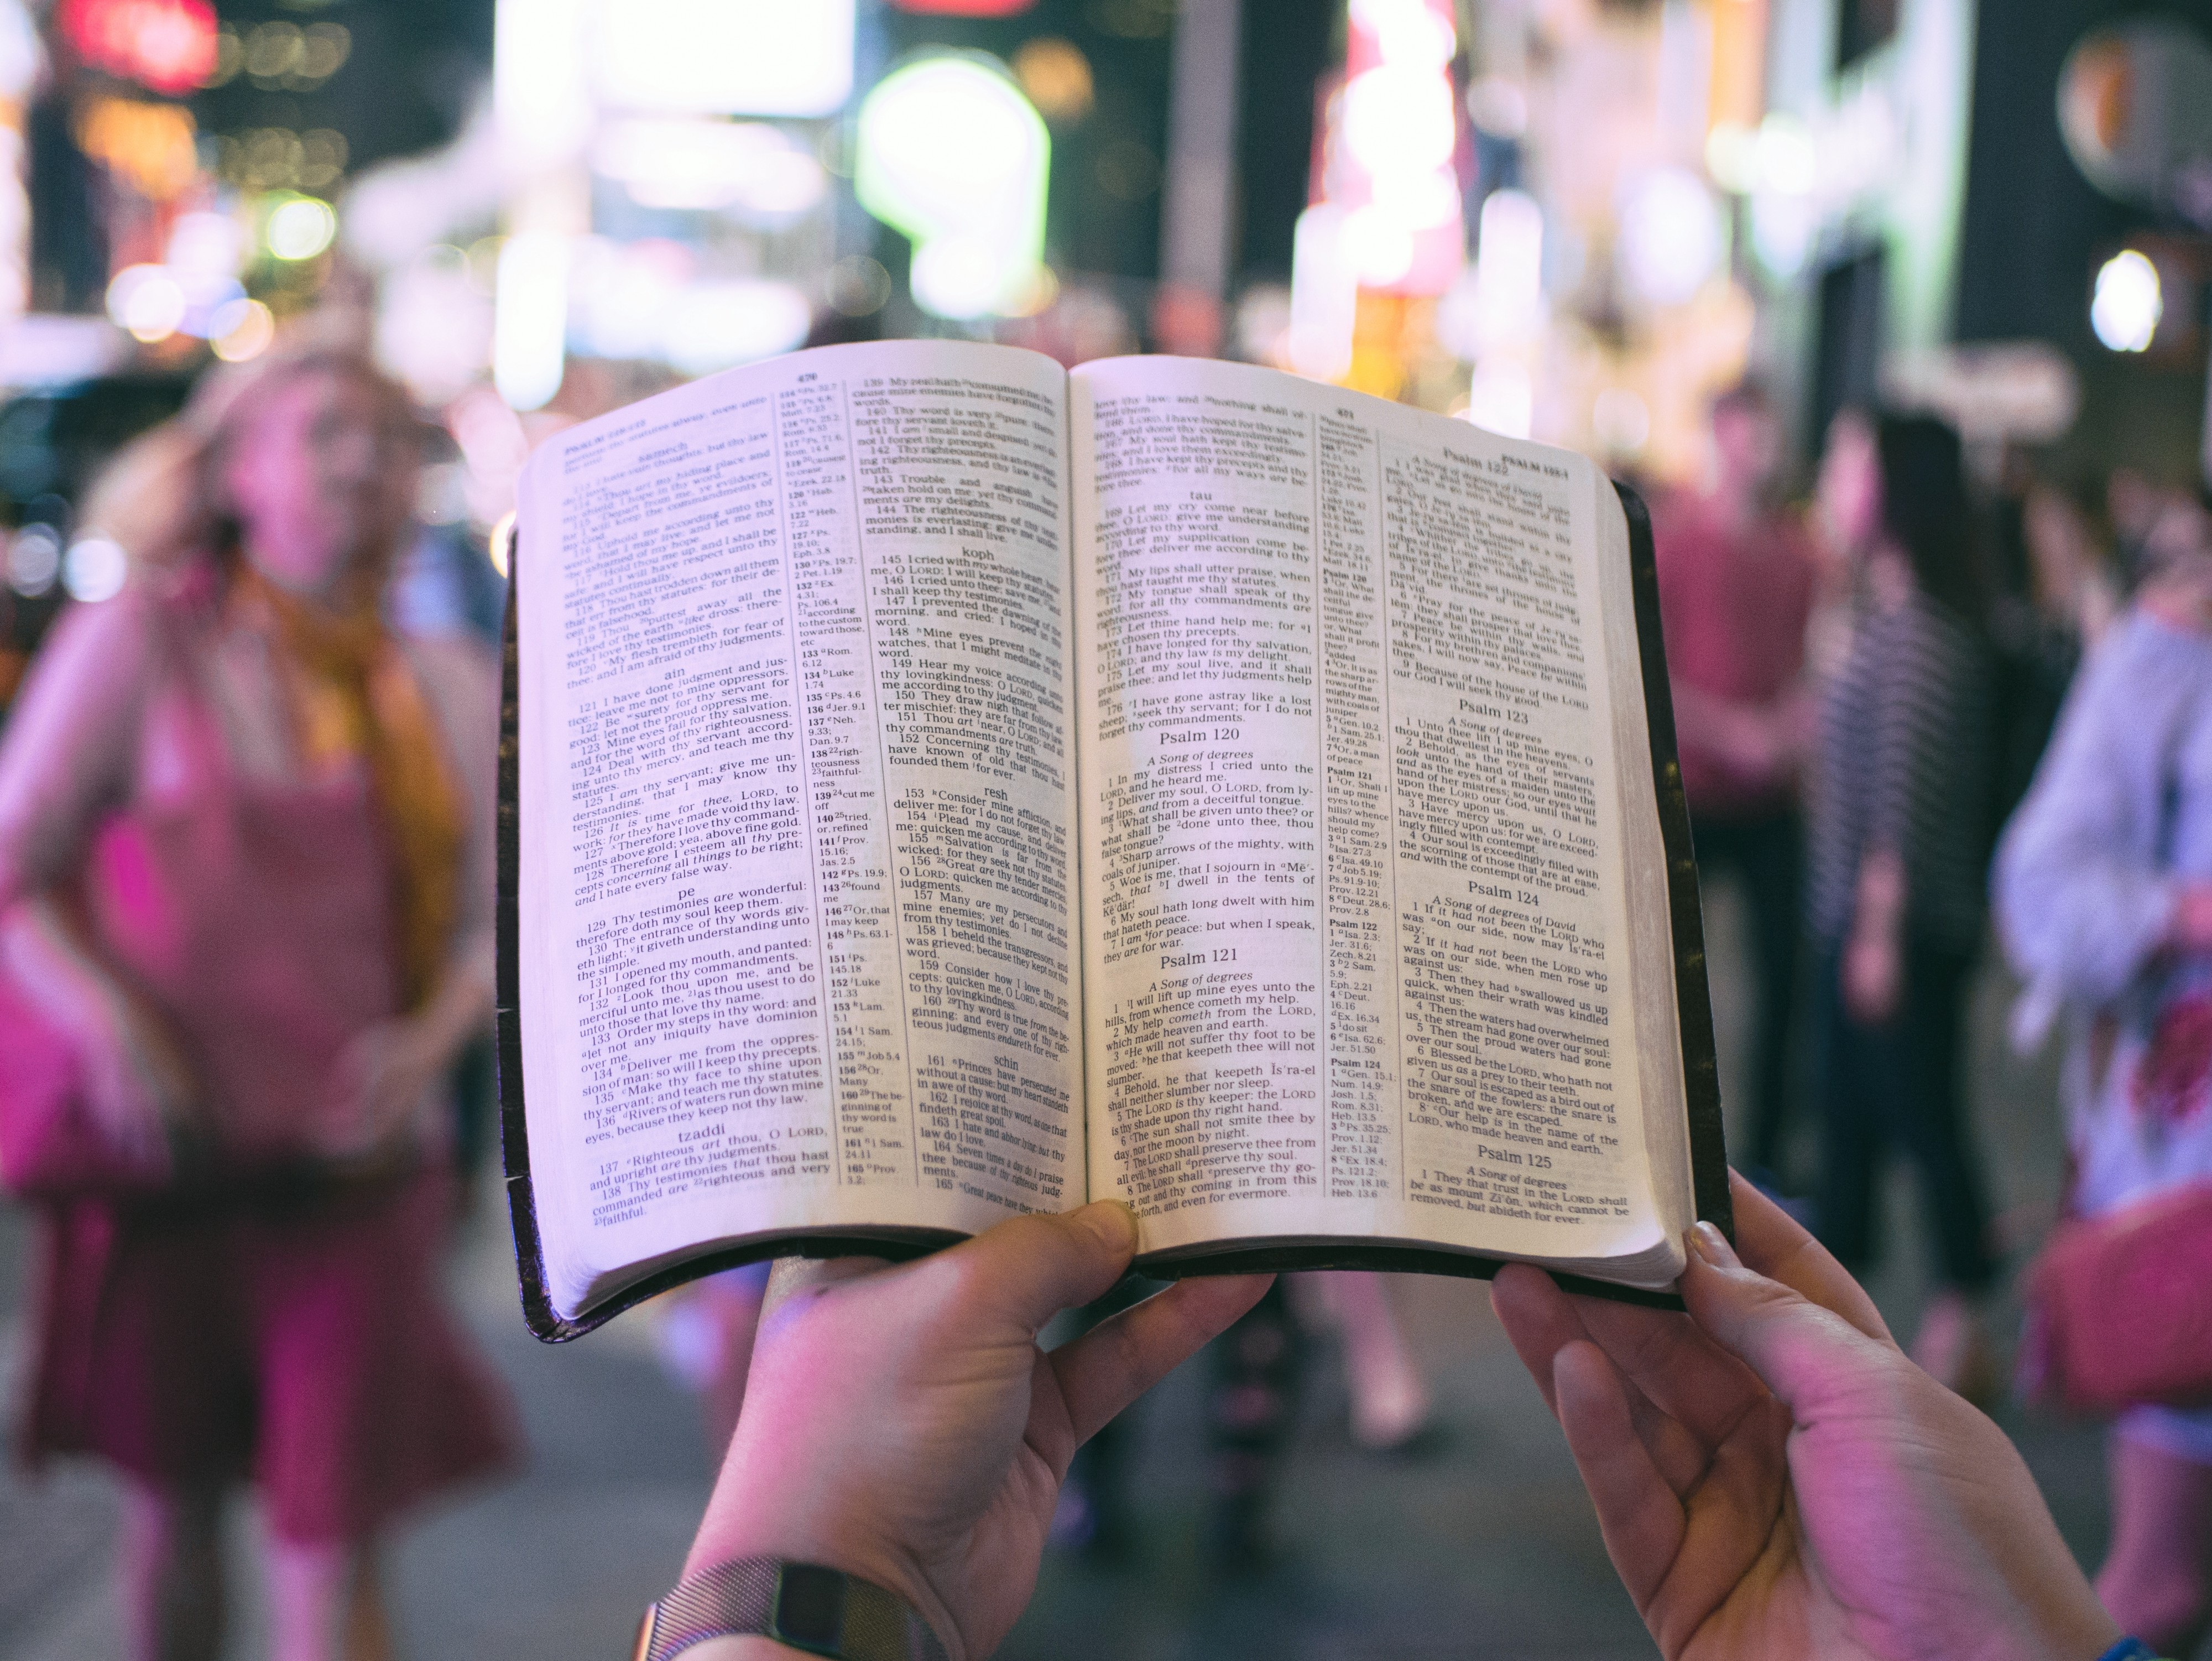 A person's hands holding a Bible, with a crowded street scene in the background